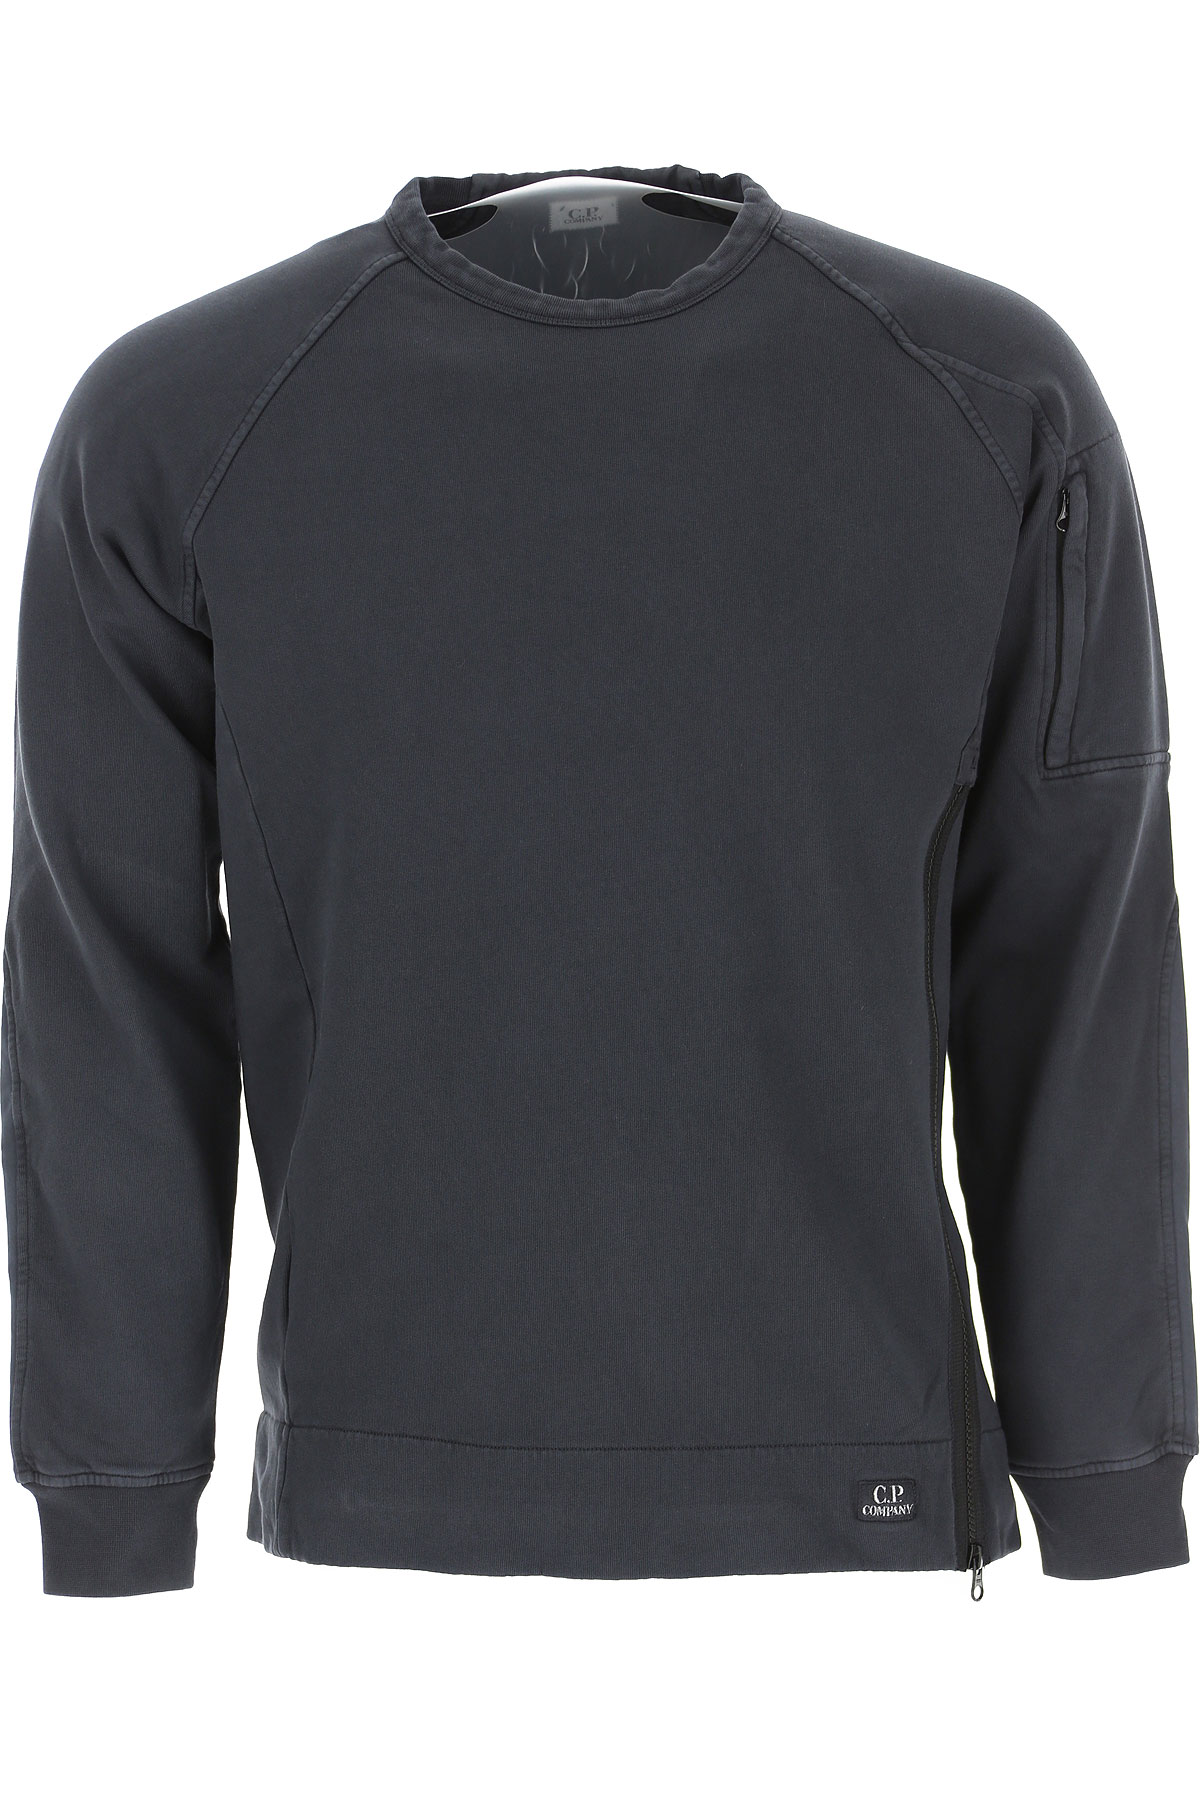 C.P. Company Sweatshirt for Men On Sale, Navy Blue, Cotton, 2019, S XL